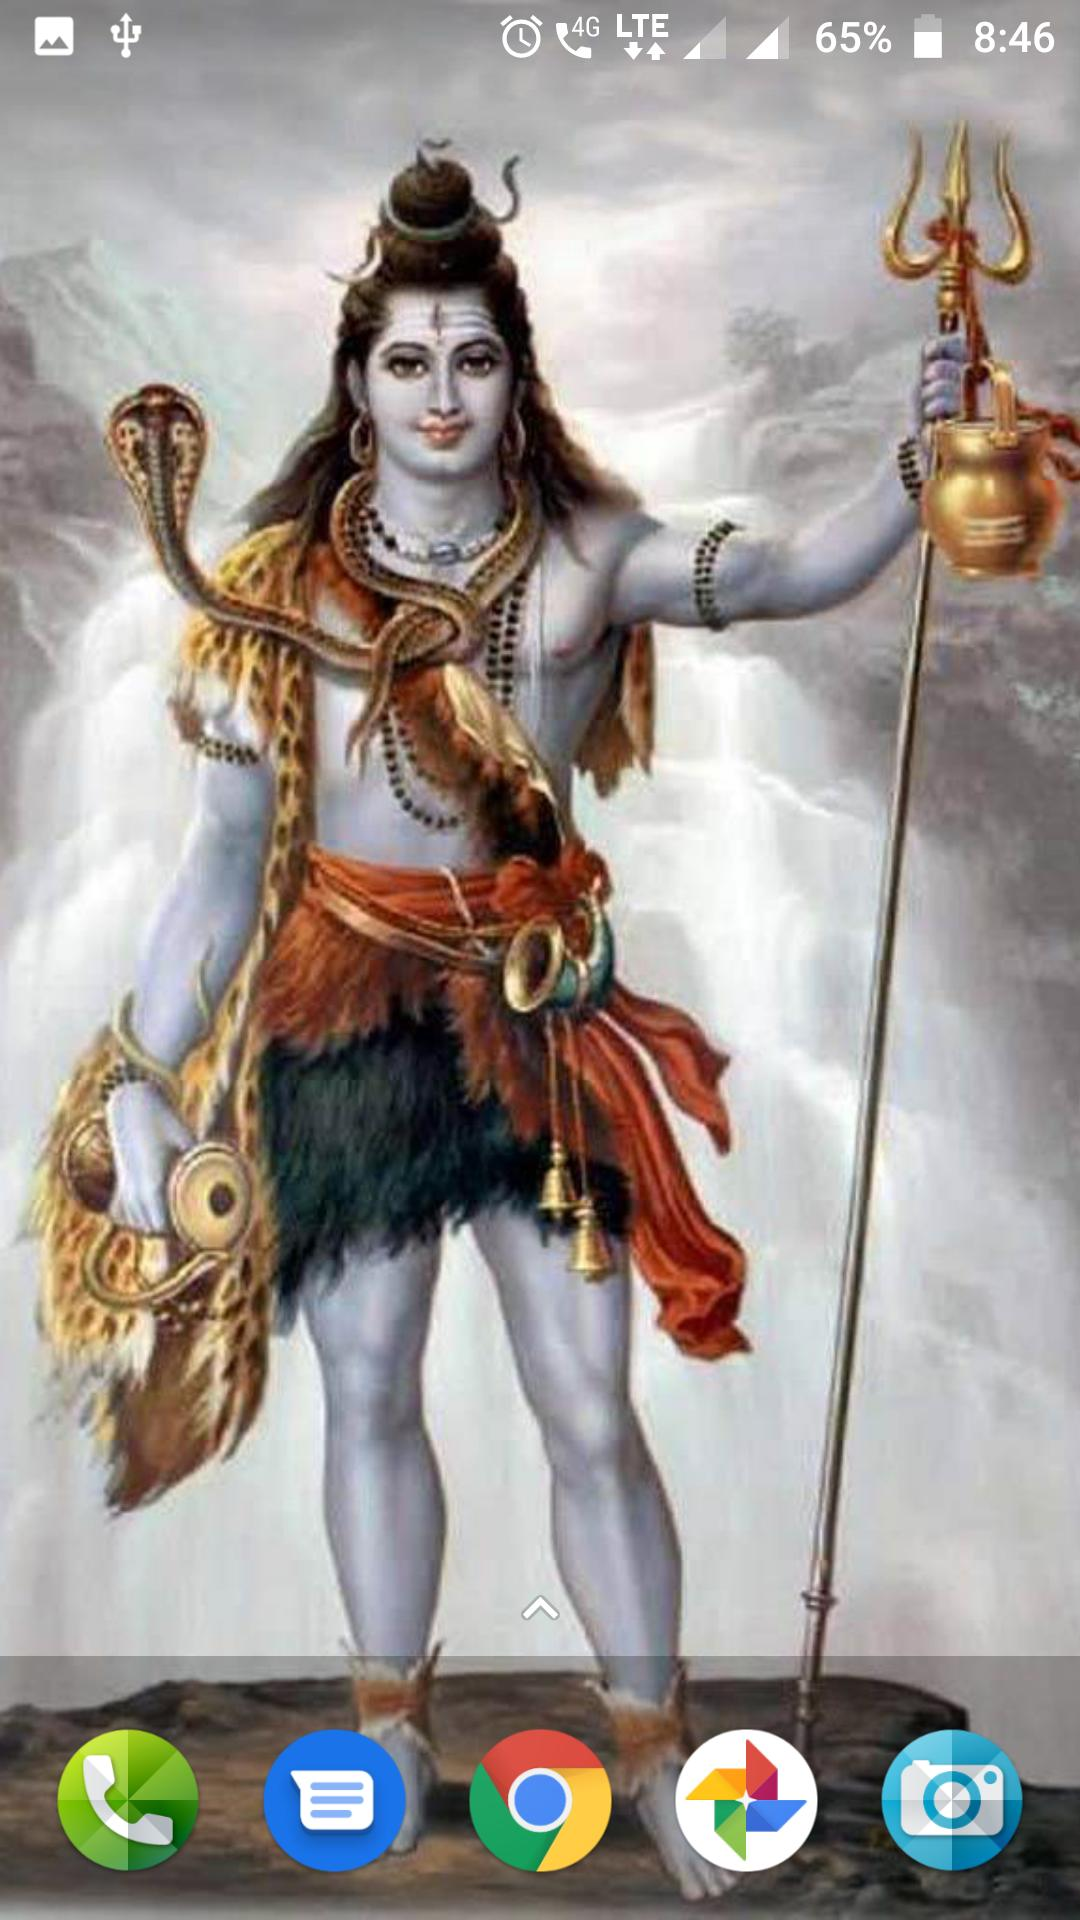 Lord Shiva Hd Wallpaper for Android - APK Download